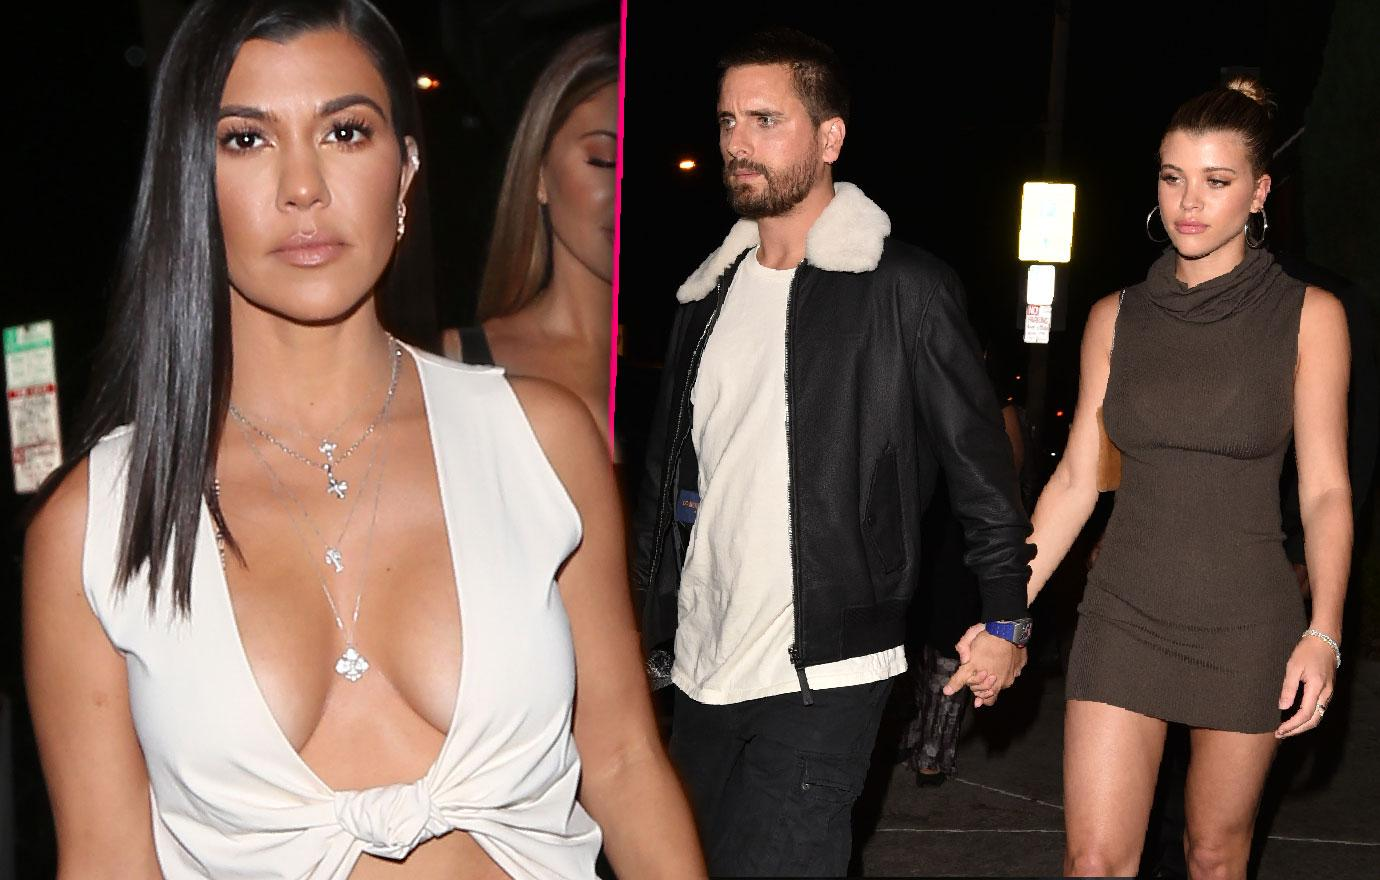 Scott Disick And Sofia Richie Dine With Kourtney Kardashian